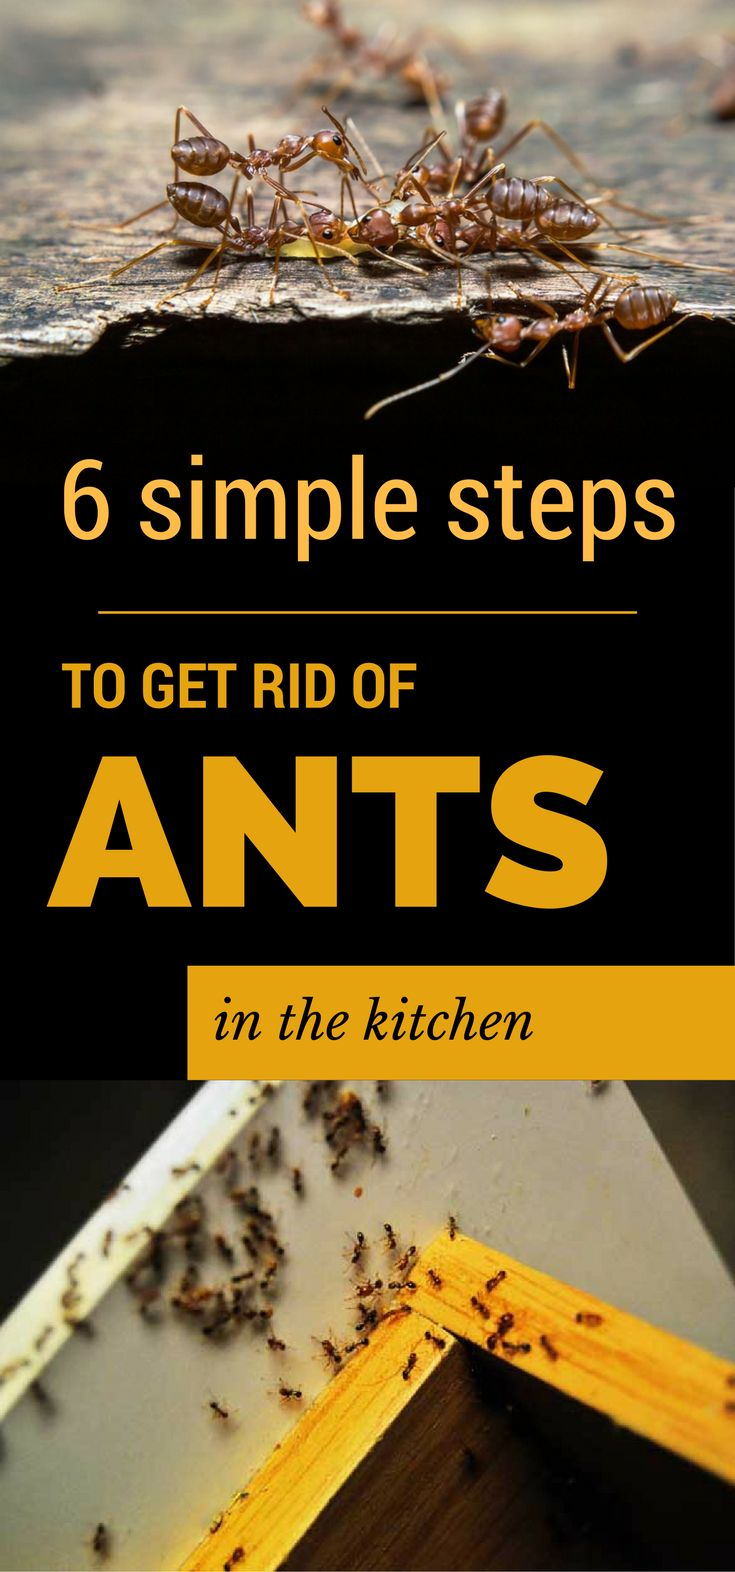 Small Red Ants In Kitchen How To Get Rid Of Small Red Ants In Kitchen Rjjhbcom How To Get